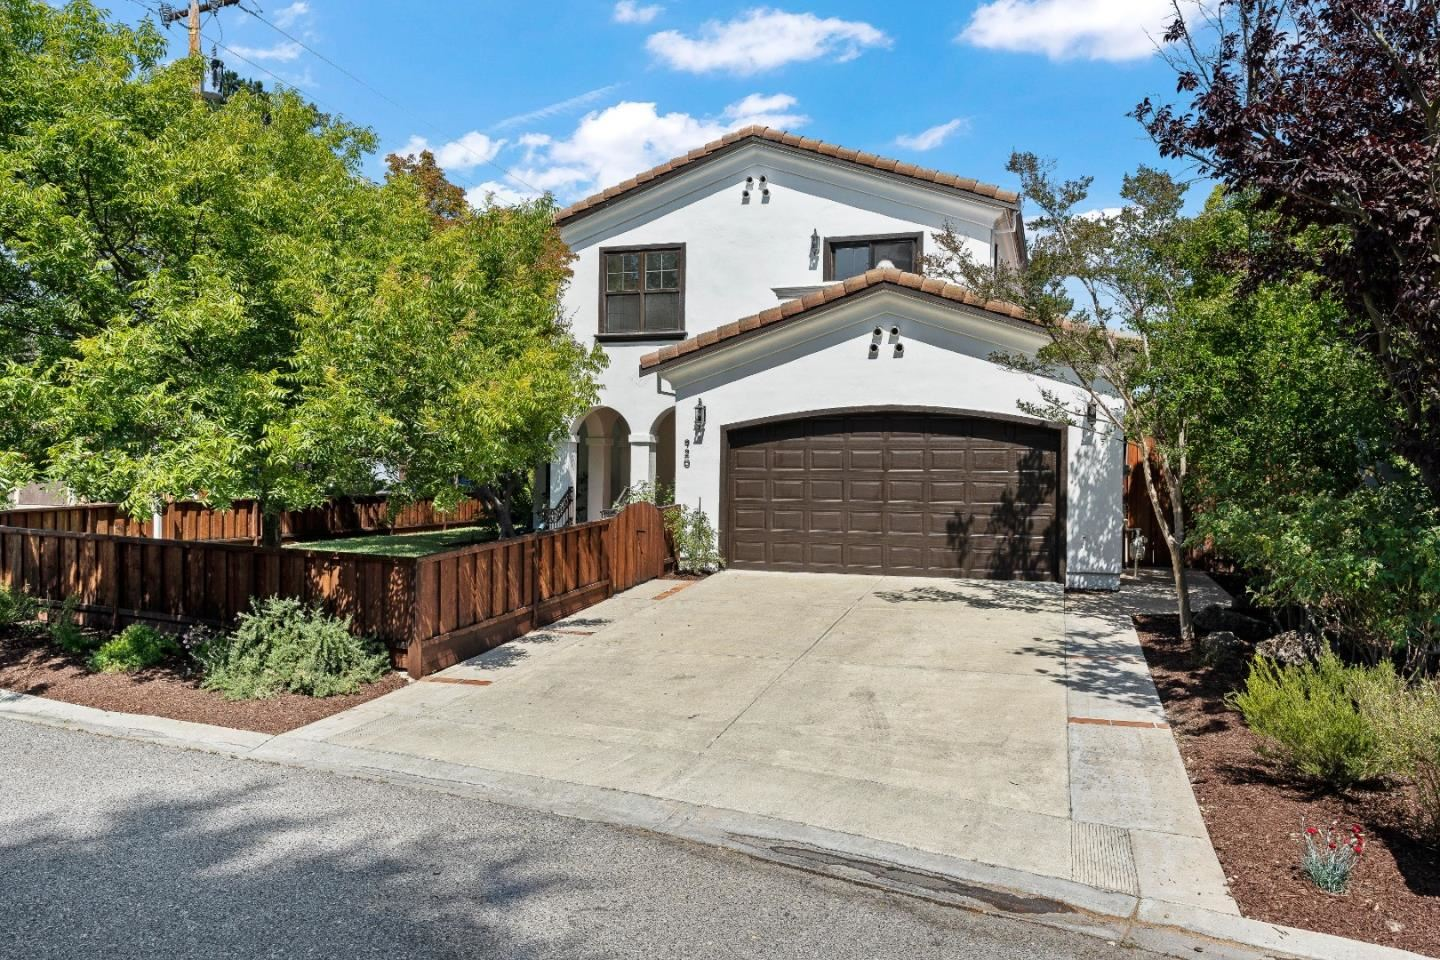 Photo for 920 Cullen Court, CAMPBELL, CA 95008 (MLS # ML81851802)